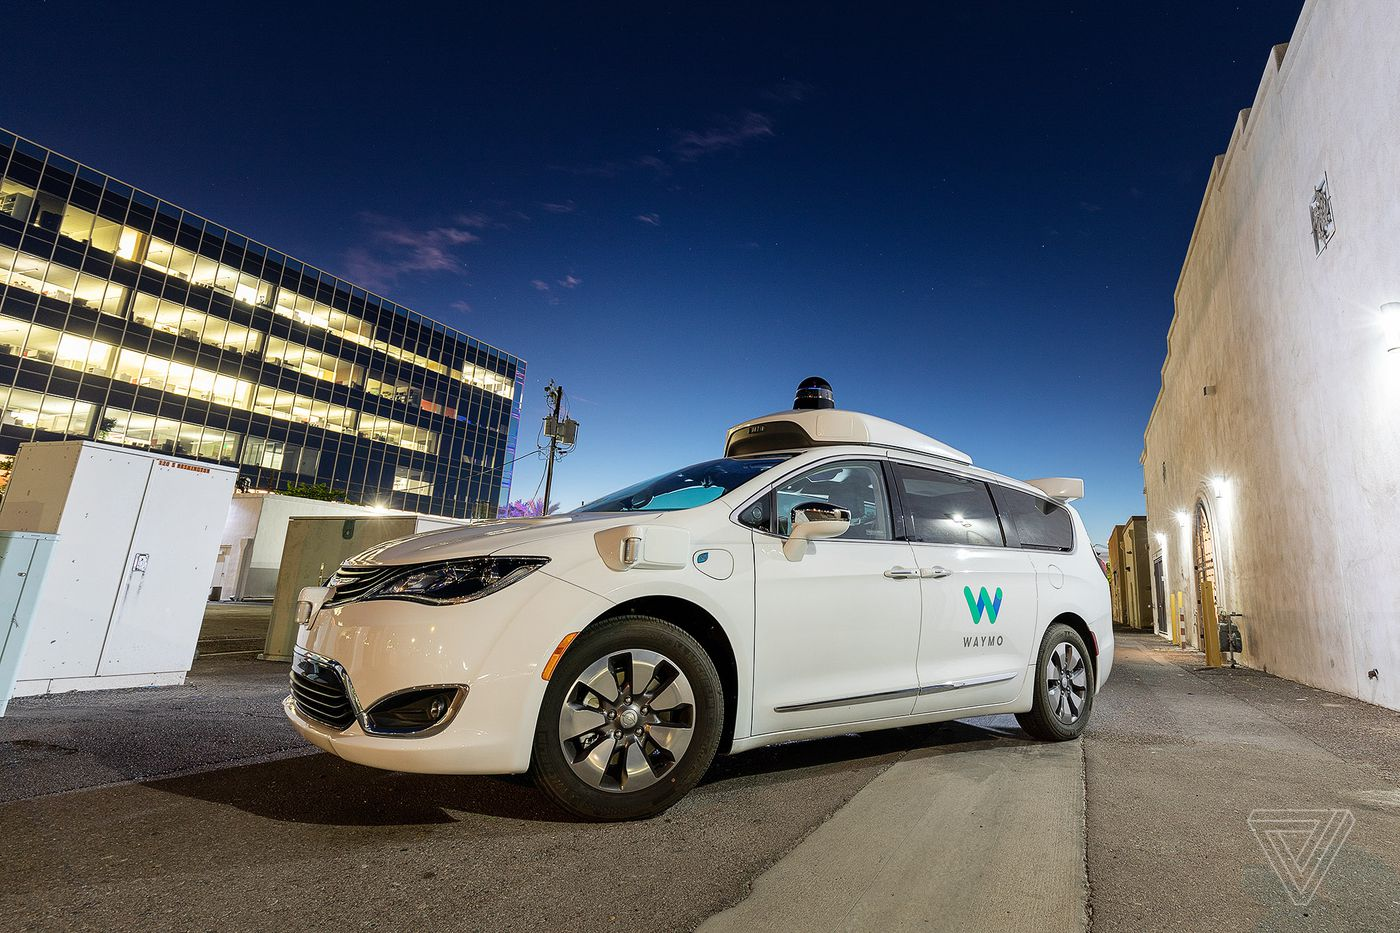 California's self-driving car reports are imperfect, but they're